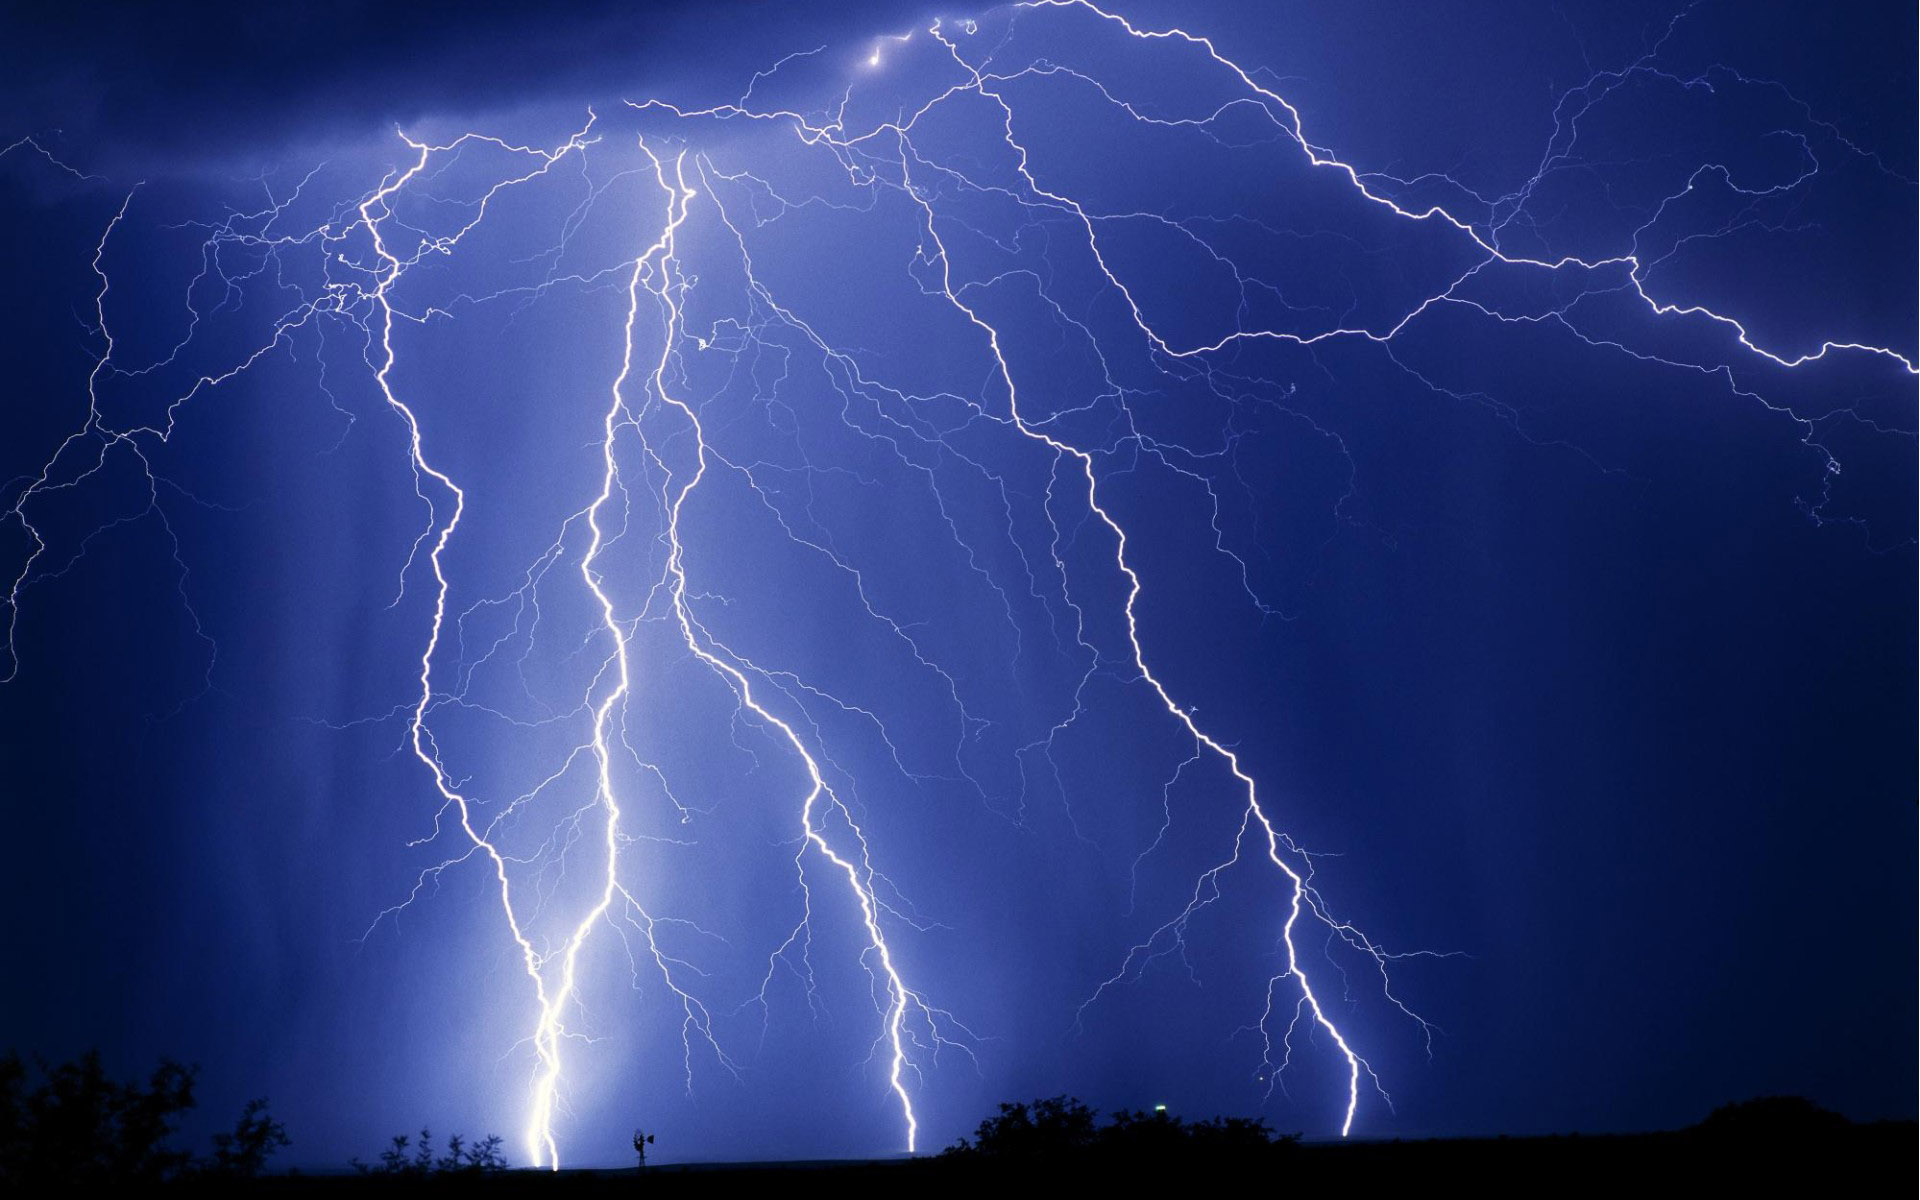 Blue Lightning Background wallpaper - 105330